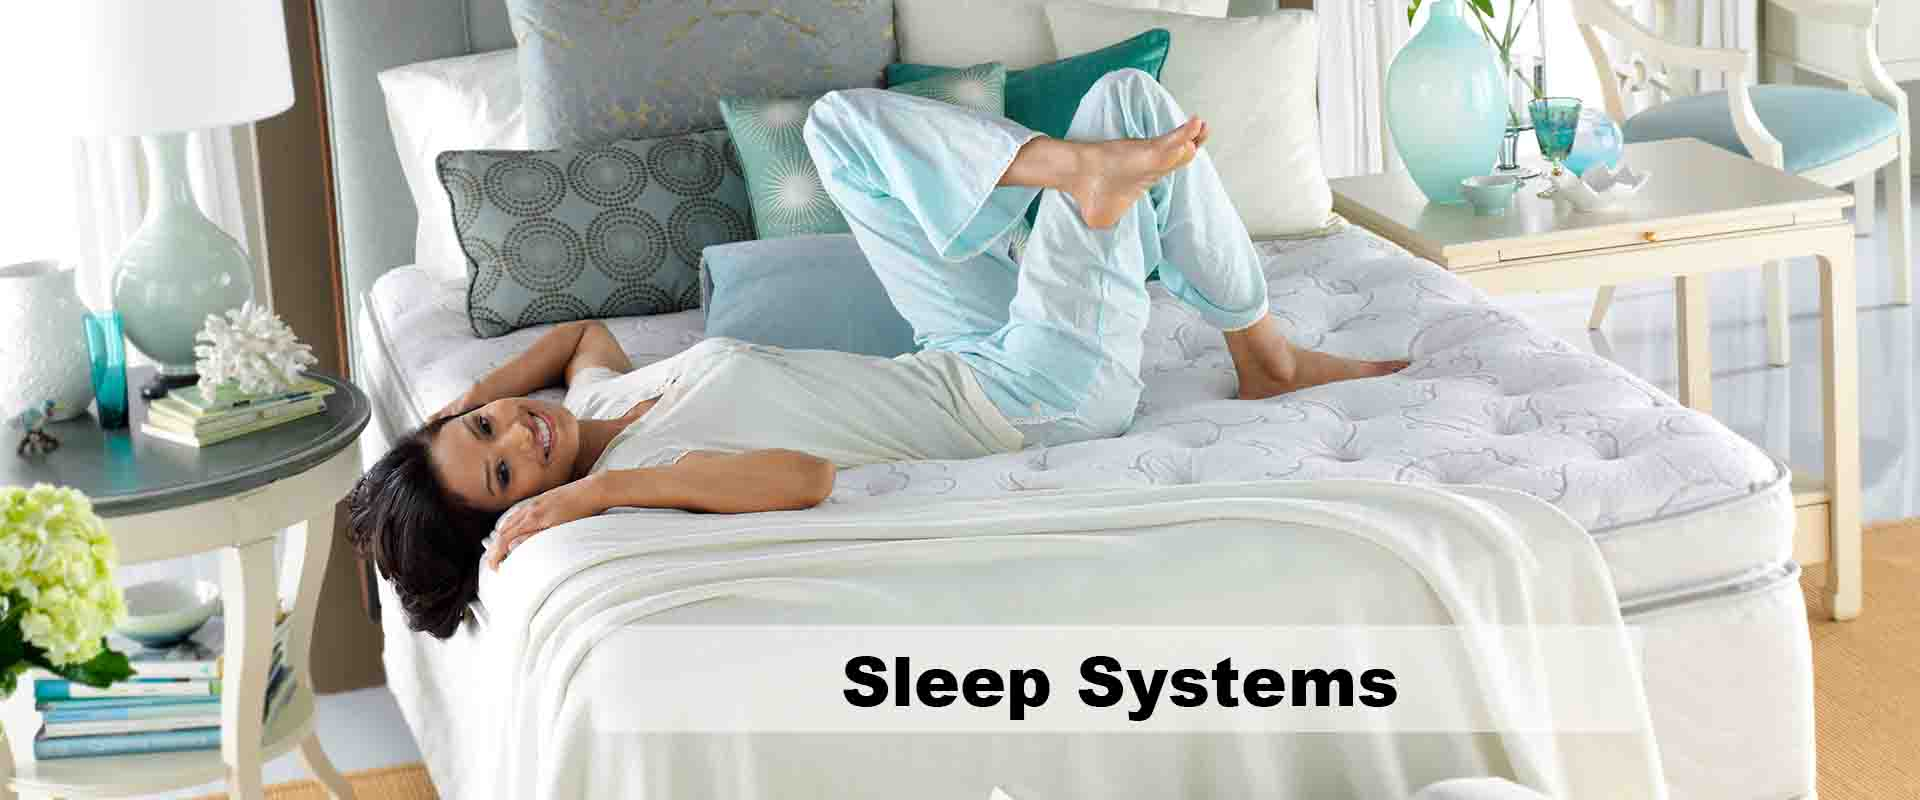 Sleep Systems